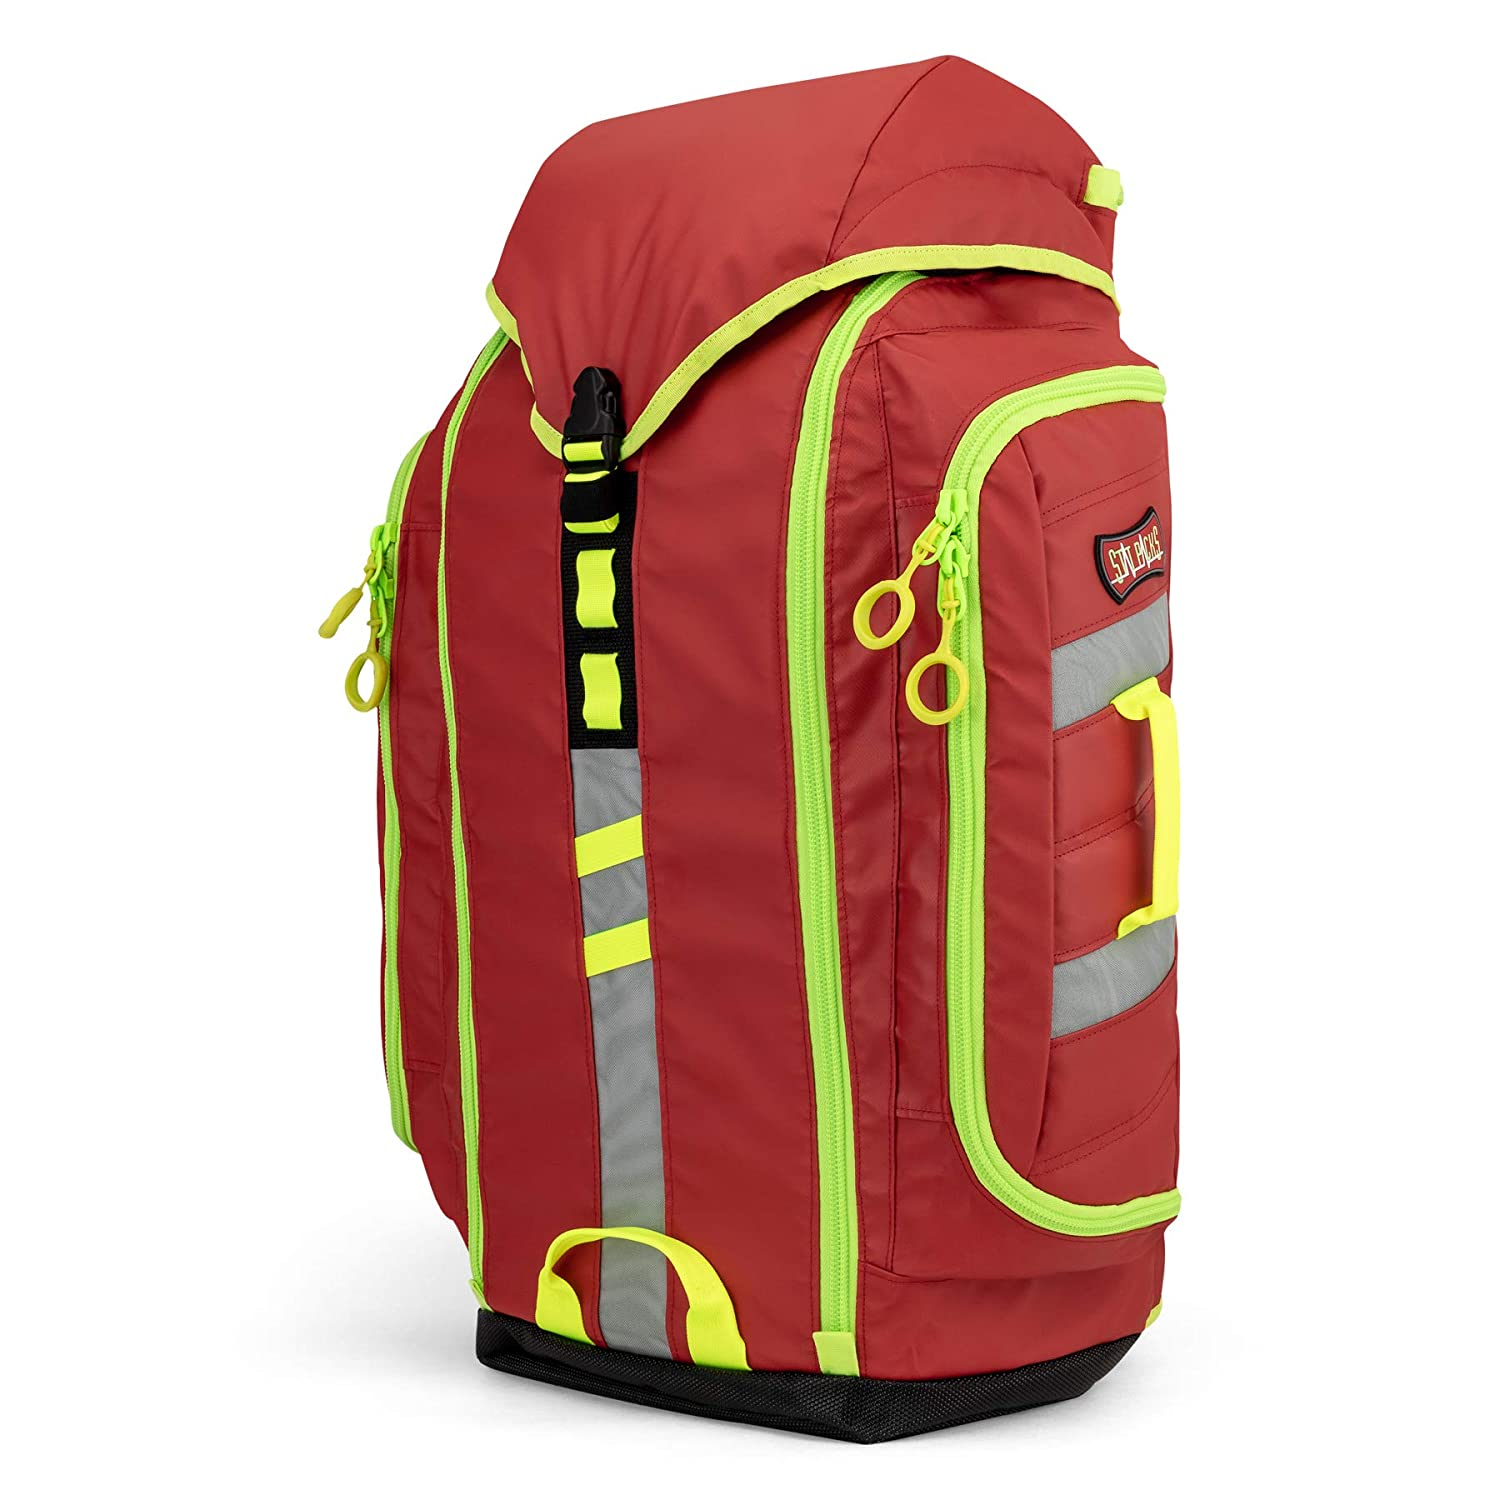 Emergency medic backpack red and fluorescent yellow, StatPacks G3 backup red, Urban emt